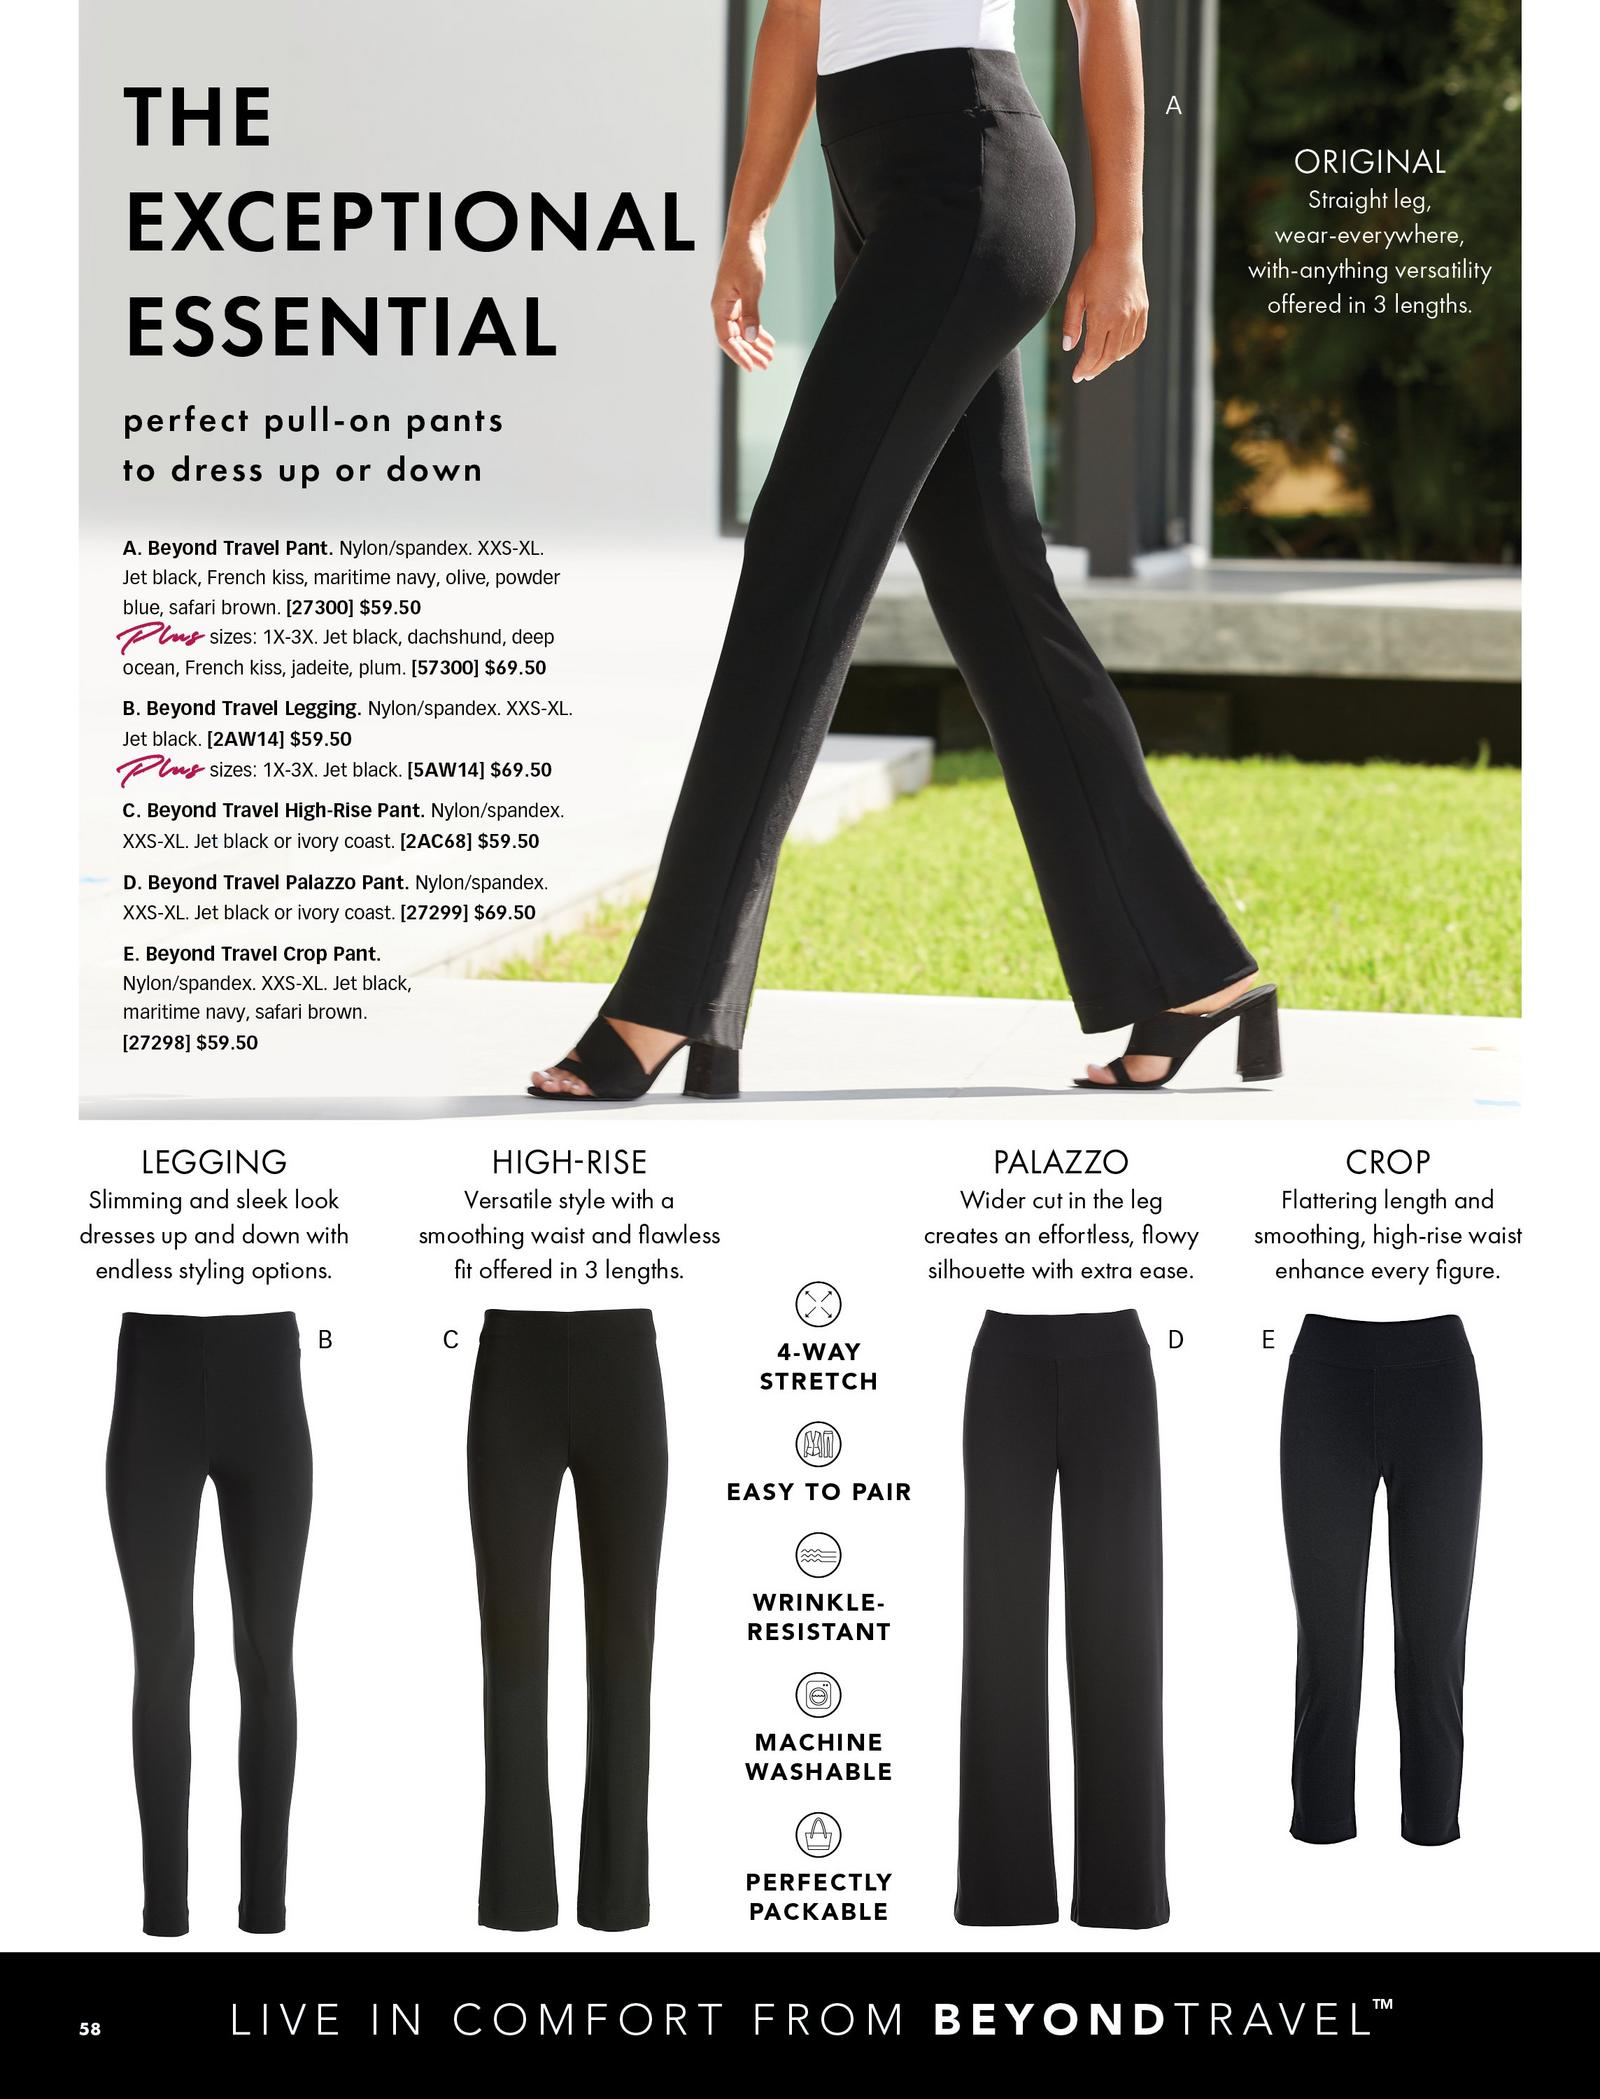 beyond travel pant styles shown in black: the original, the legging, the high-rise, the palazzo, the crop.